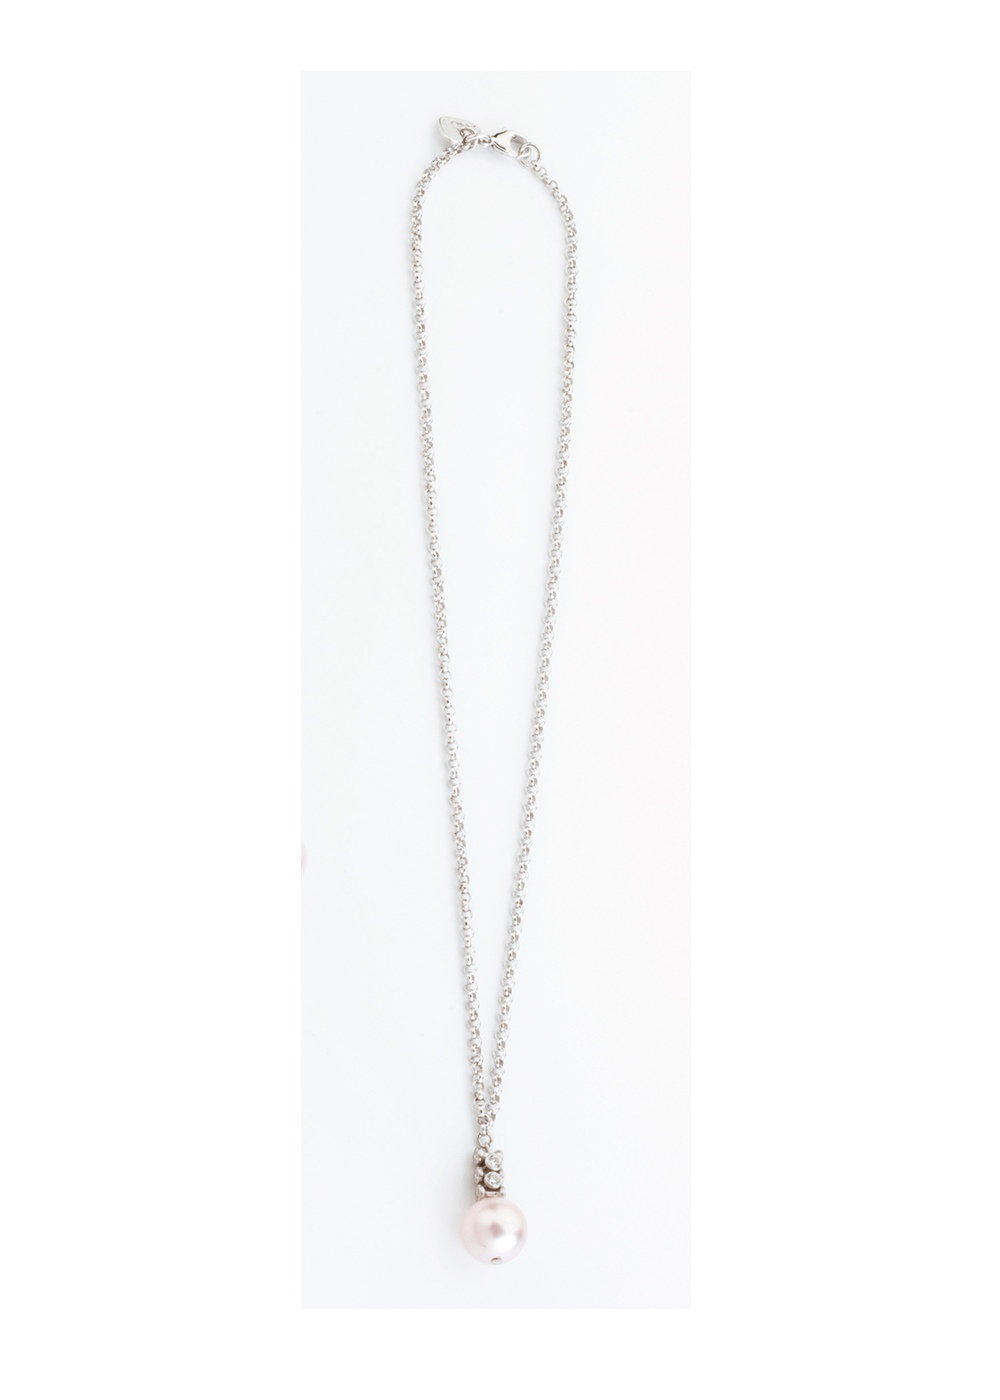 Lovepearl Neck